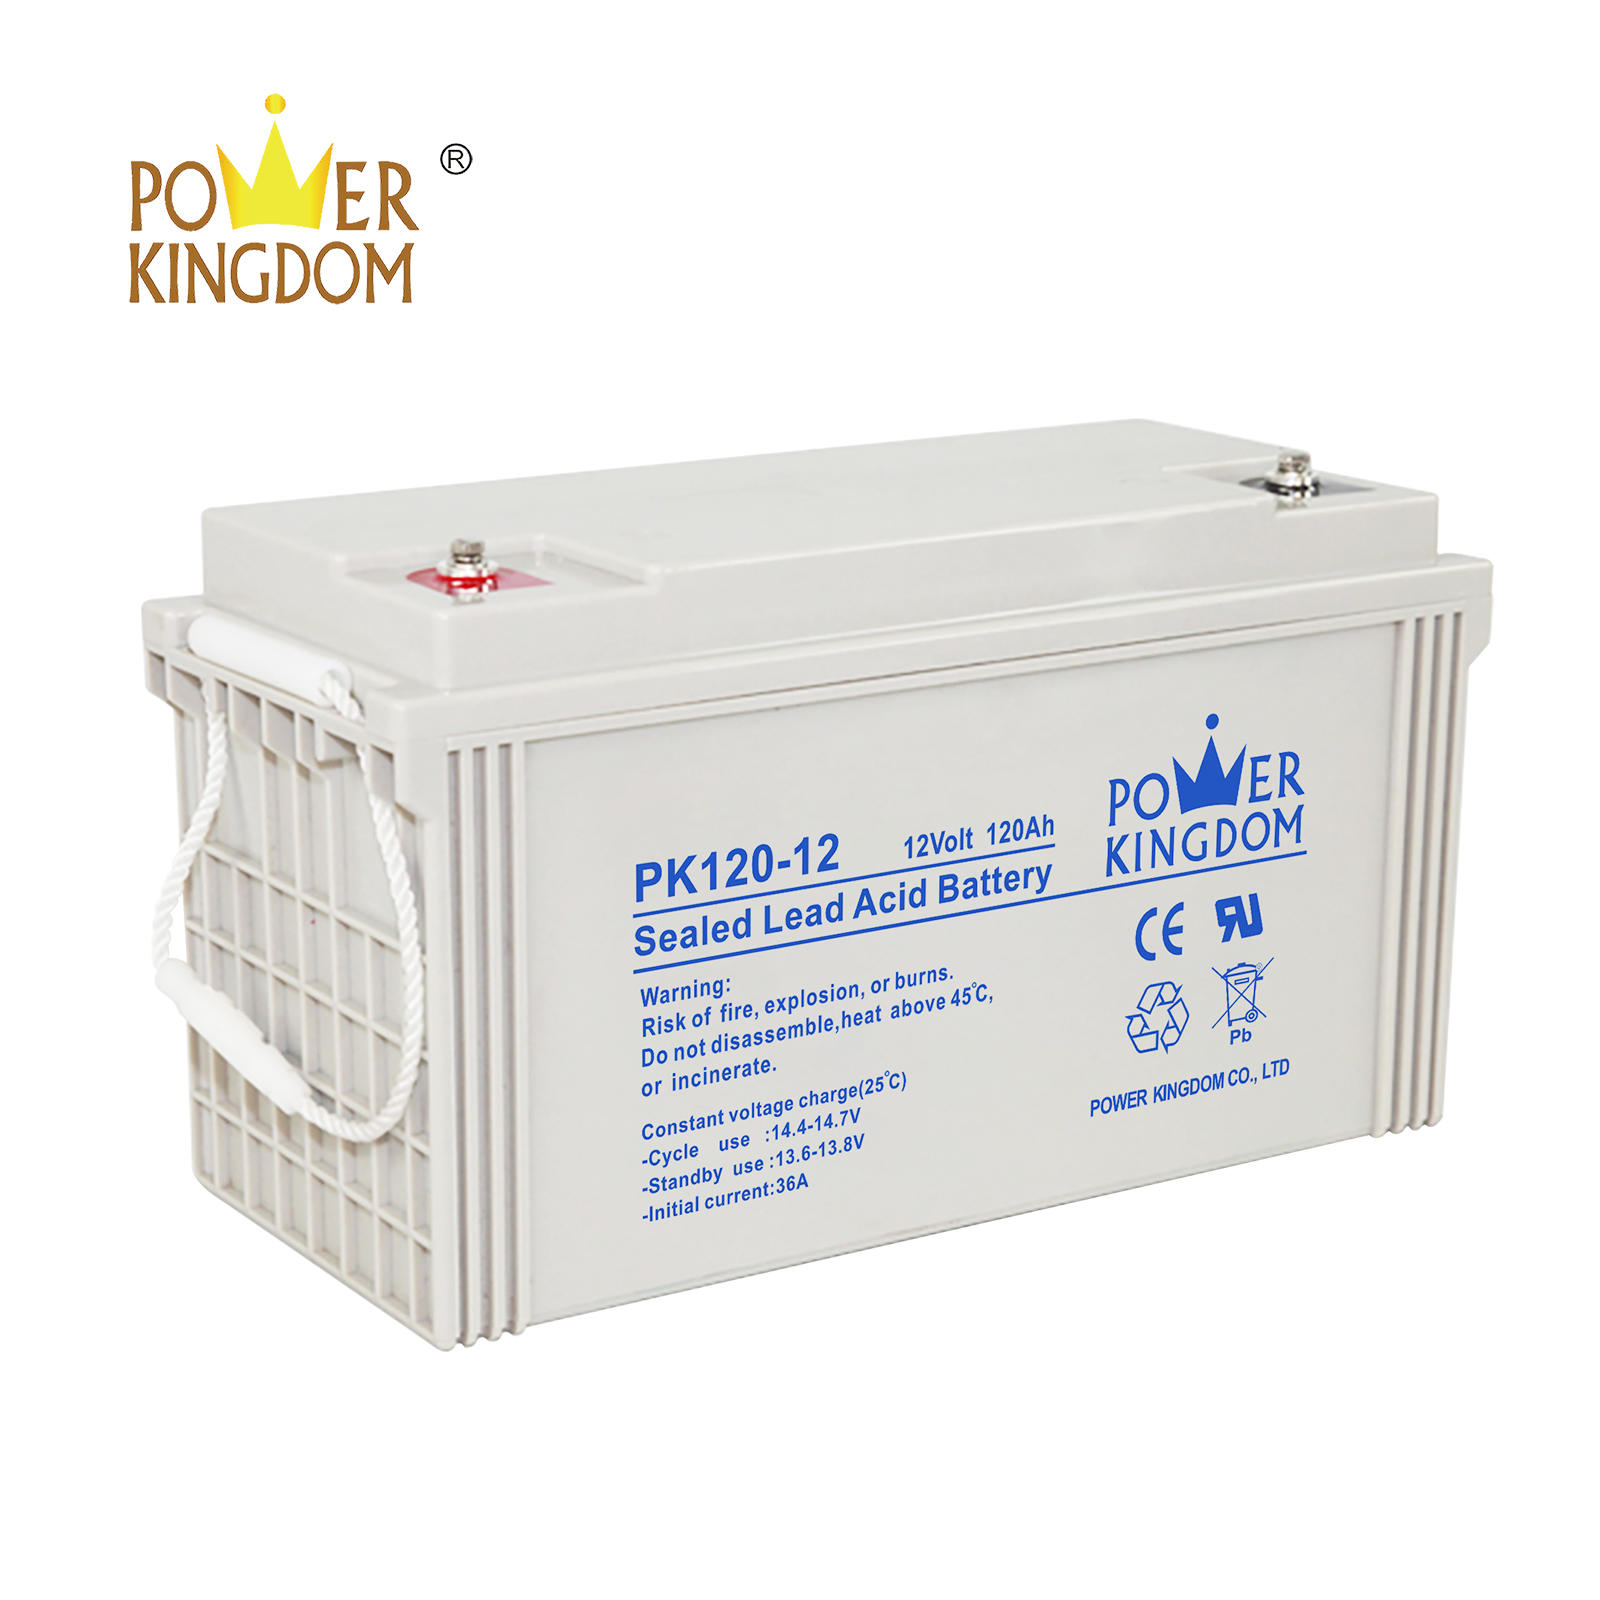 Power Kingdom 12v 120ah lead acid battery